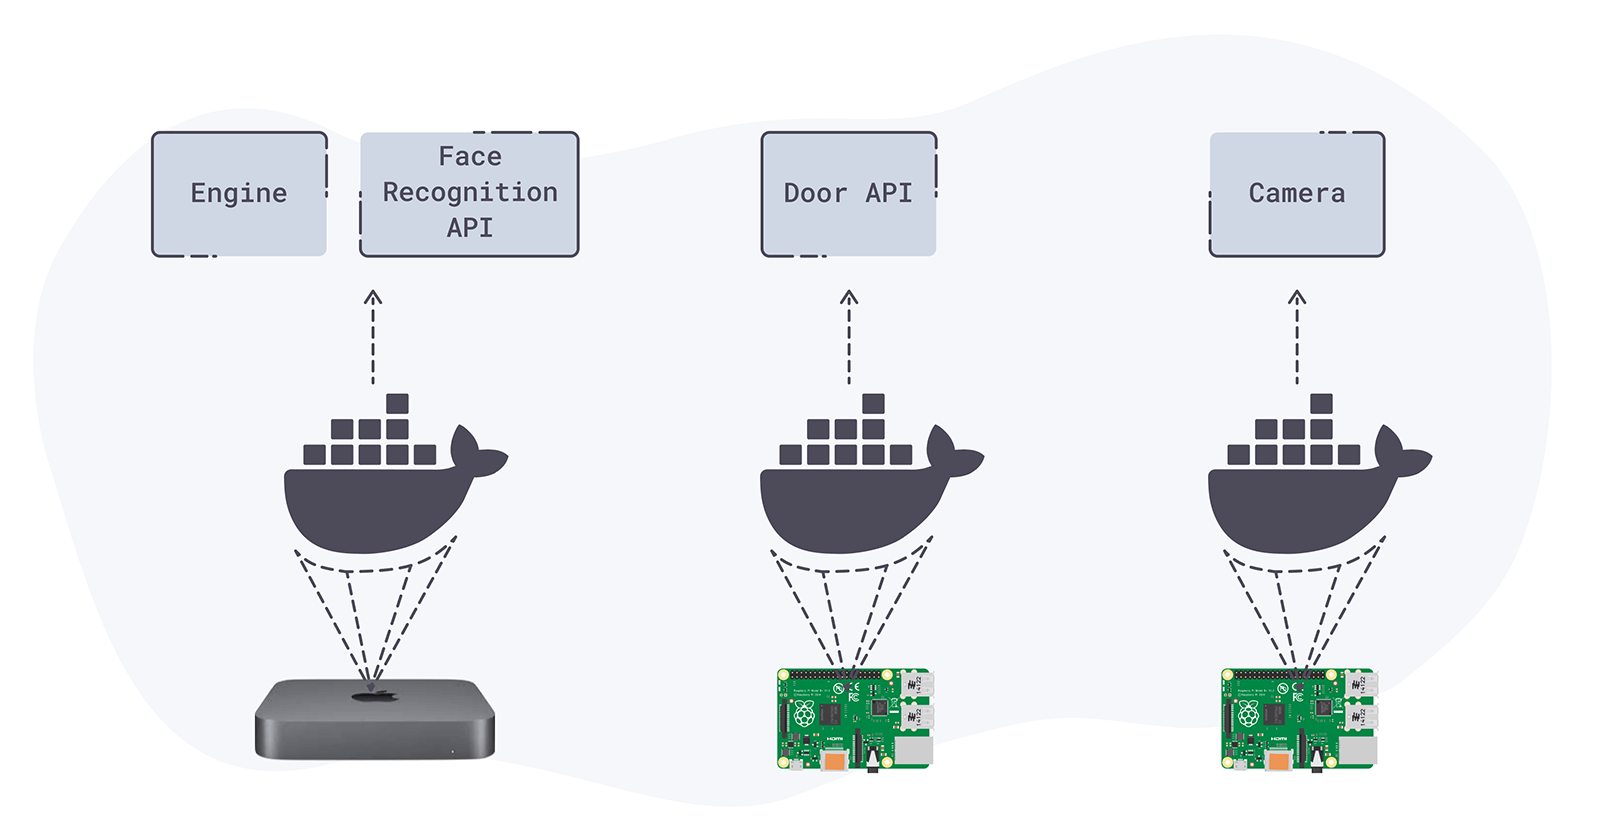 Diagram showing the Docker setup on multiple devices.